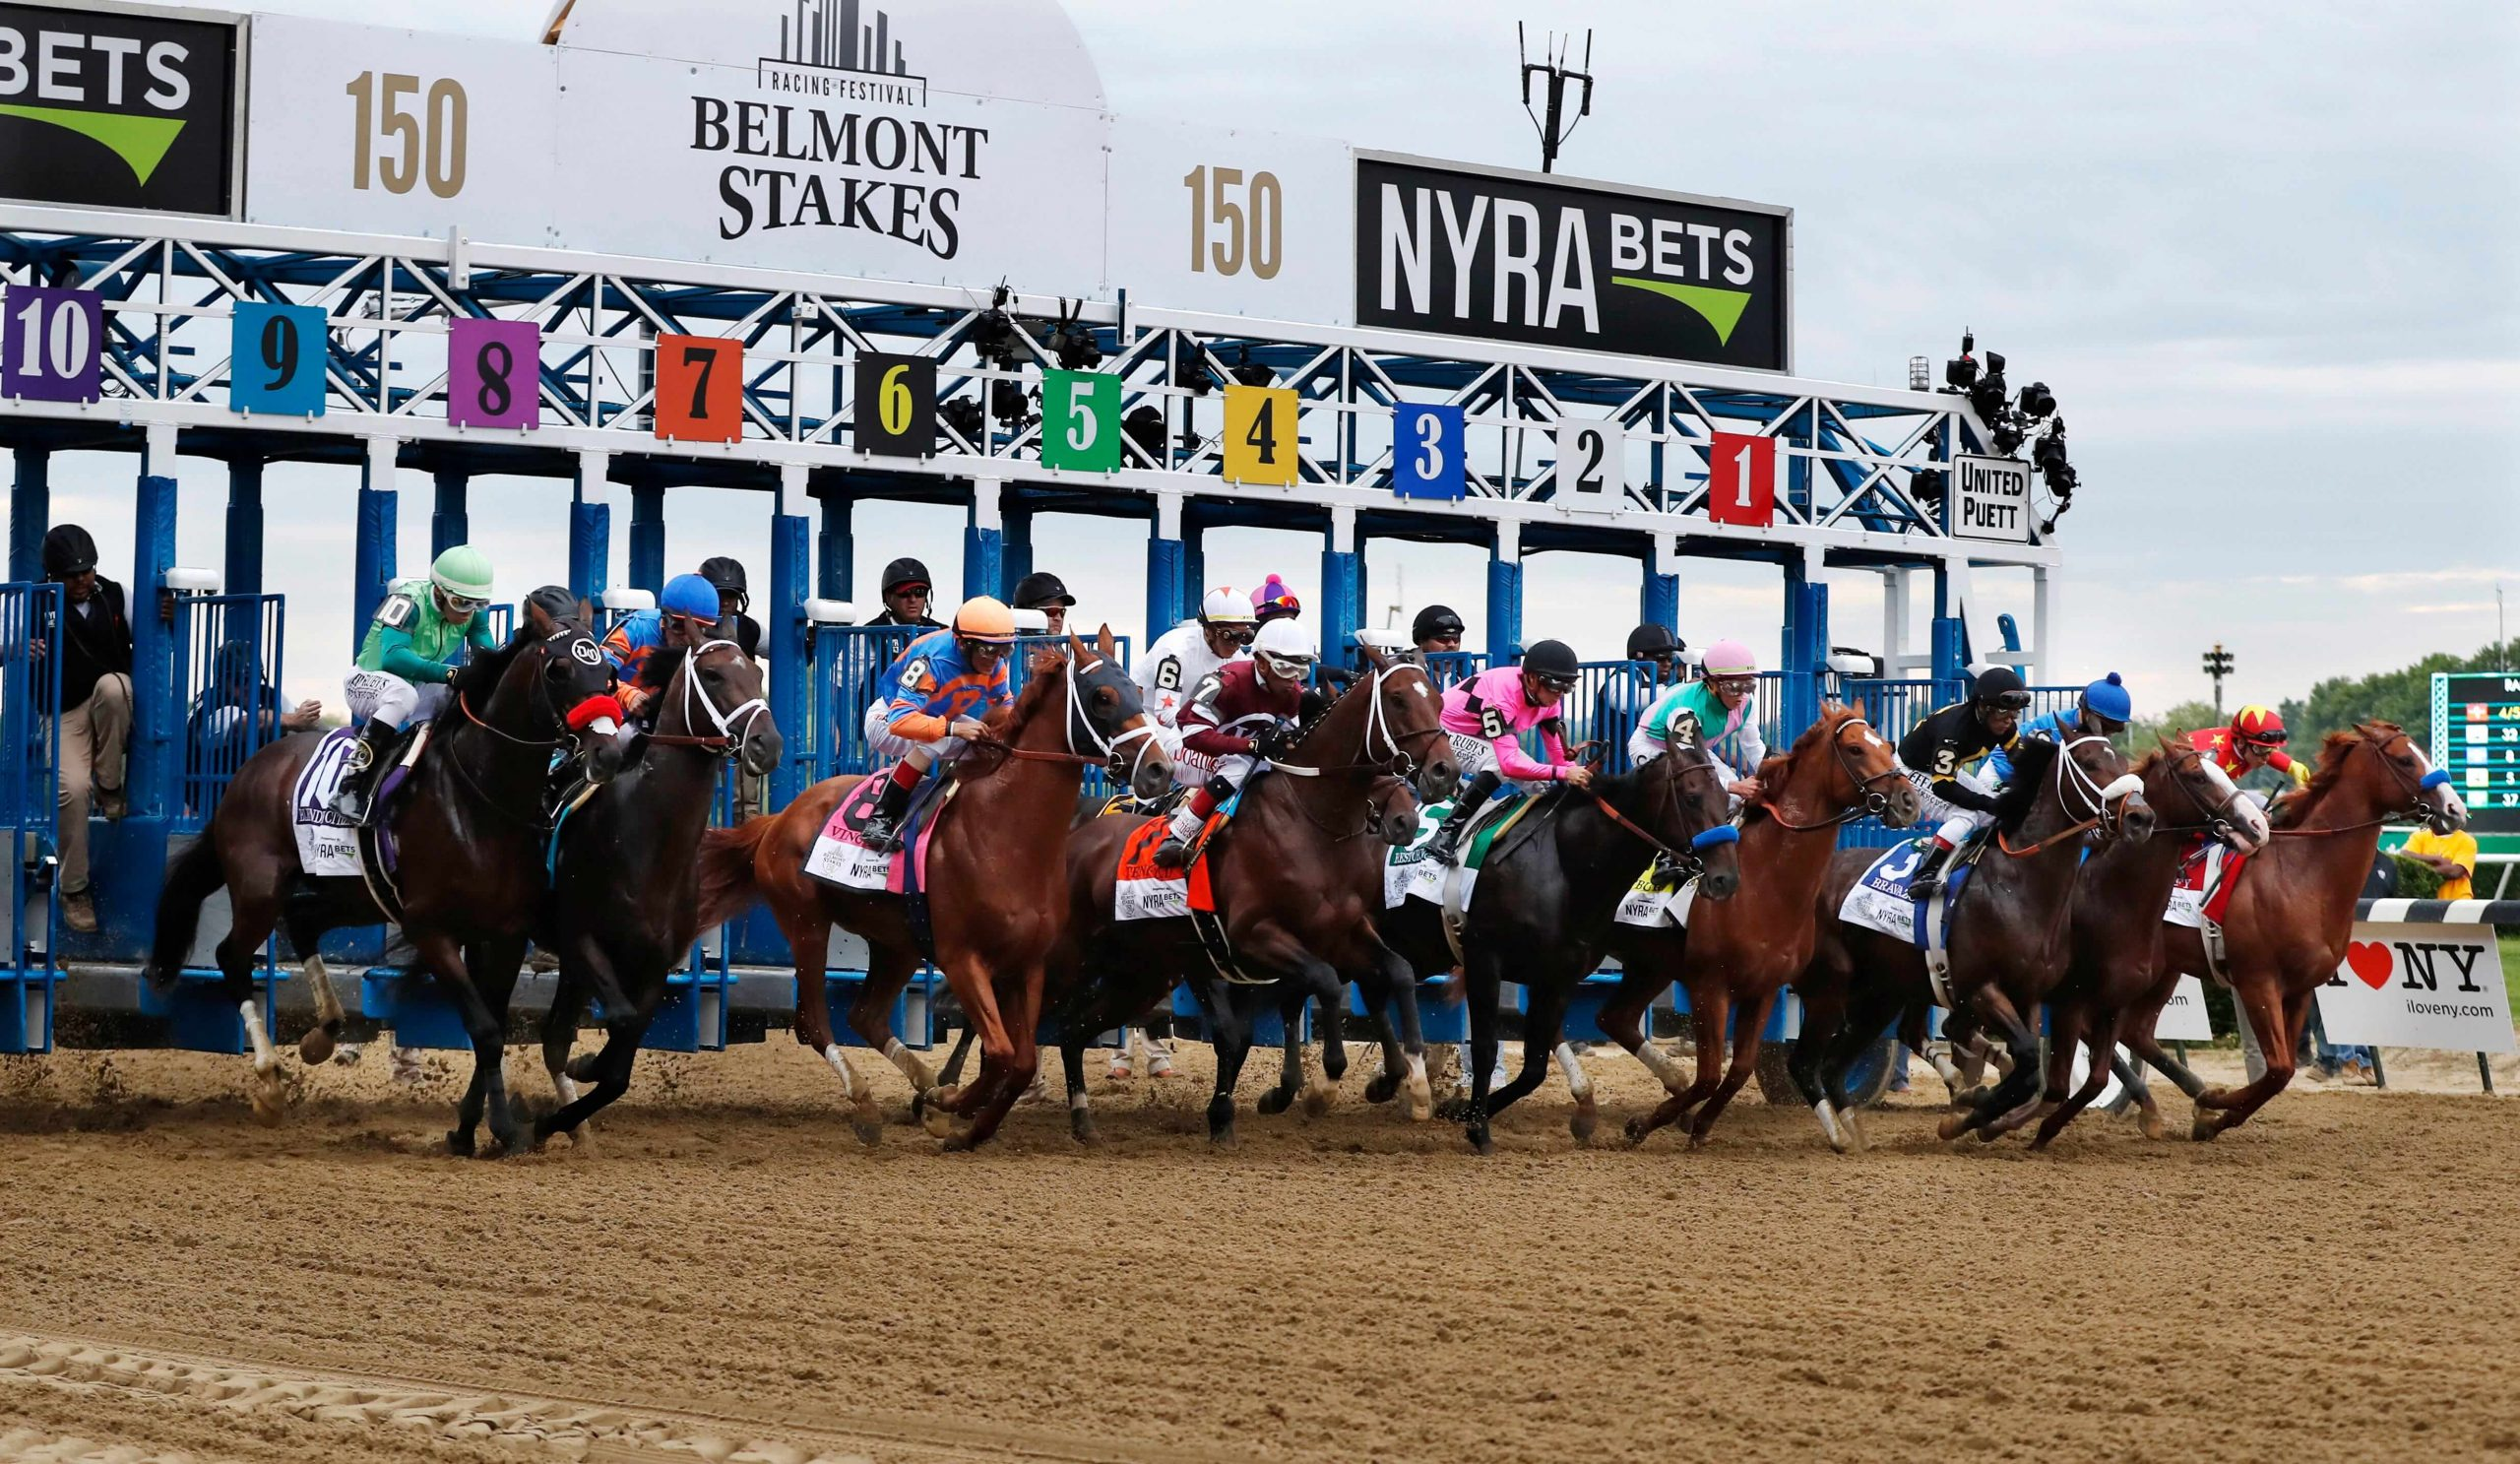 Belmont stakes betting odds 2021 rebelbetting proflowers